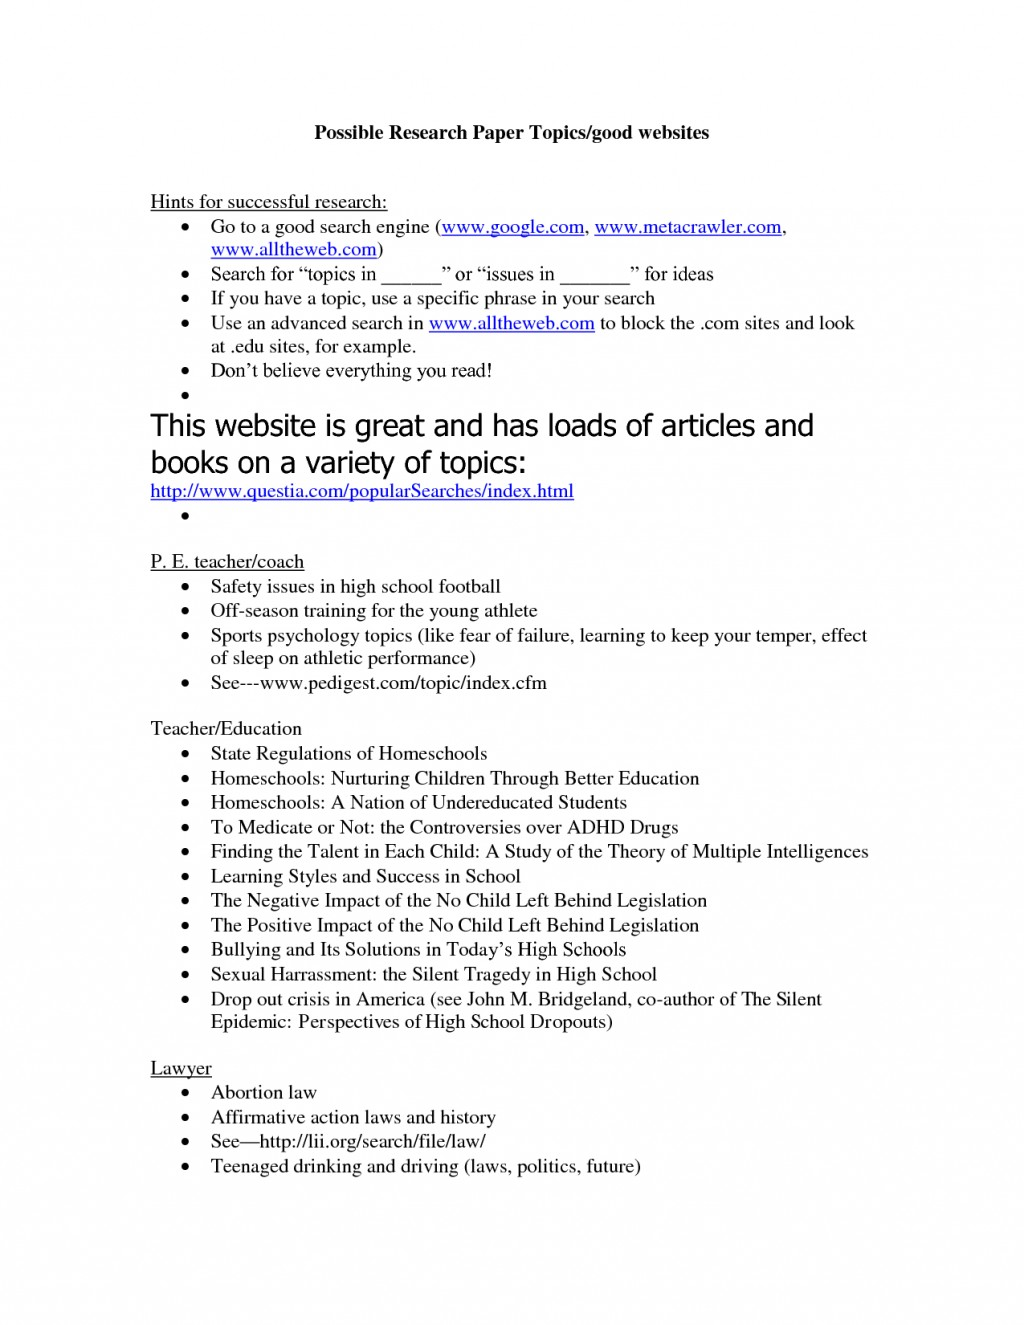 005 Best Solutions Of Interestingrch Paper Topics Fabulous For Papers High School Students To Write Fearsome A Research On Fun Good Essay Ideas Large